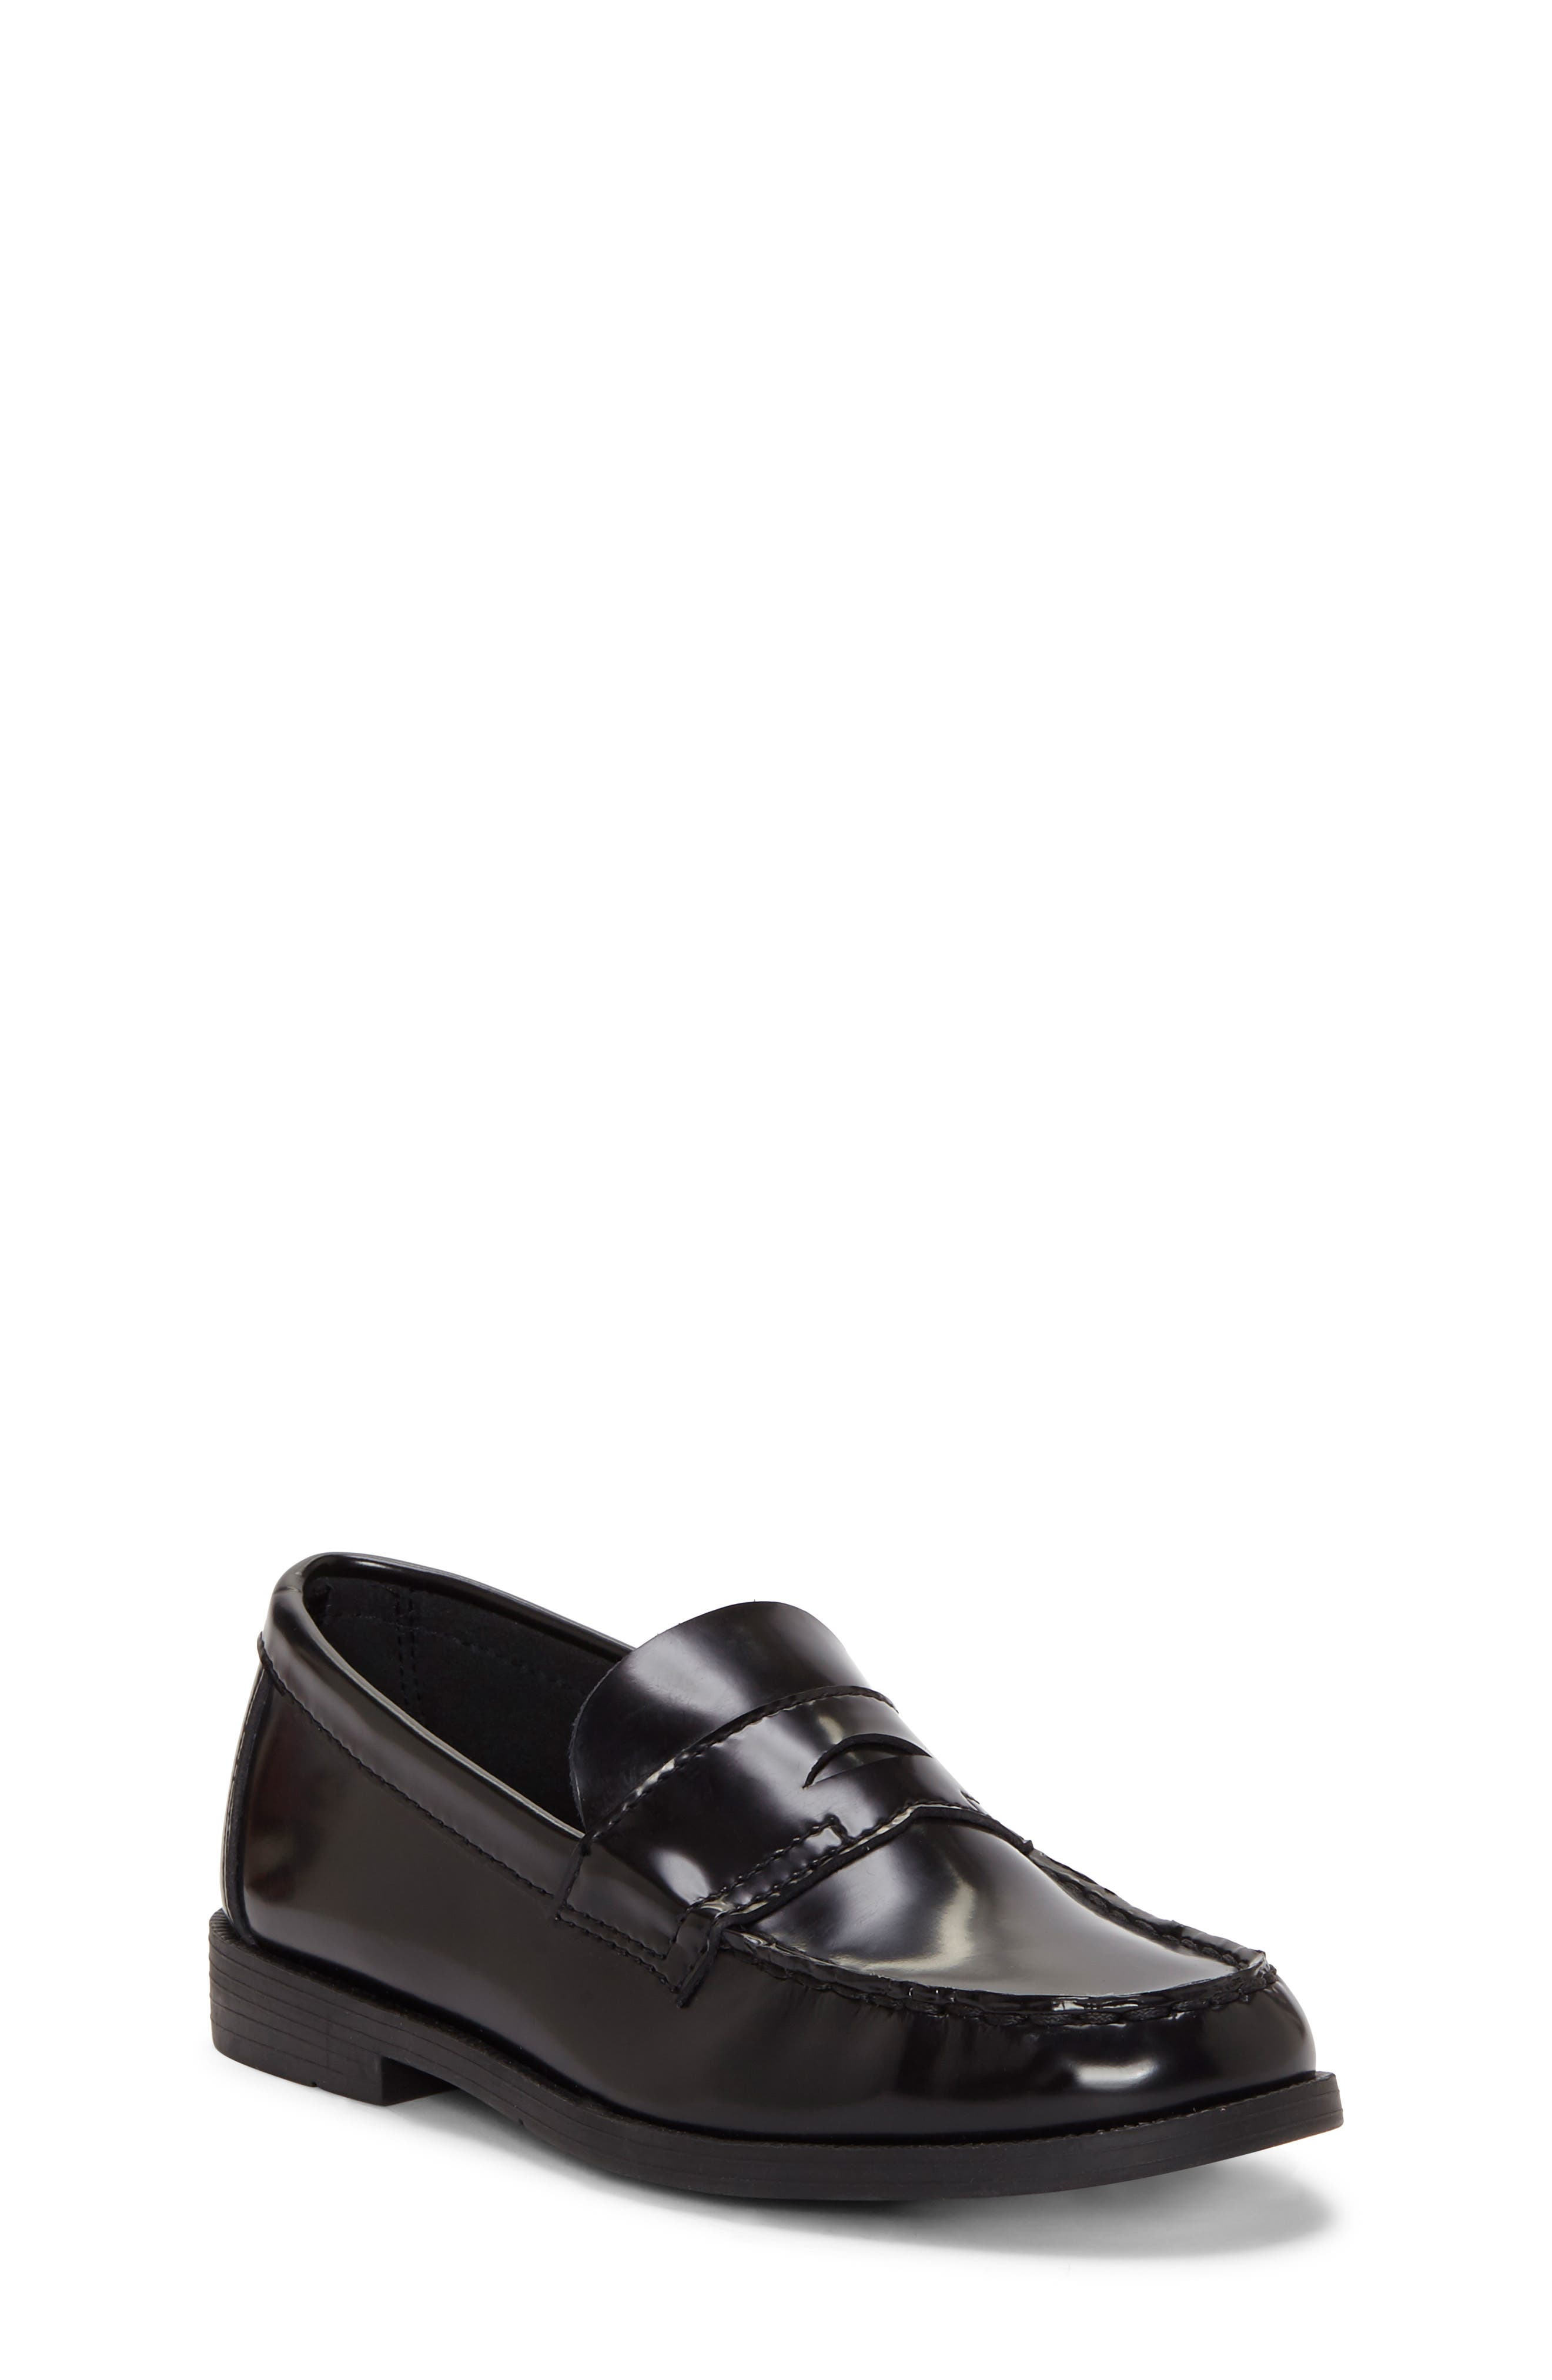 Toddler Boys First Semester Teacha Penny Loafer Size 11 M  Black